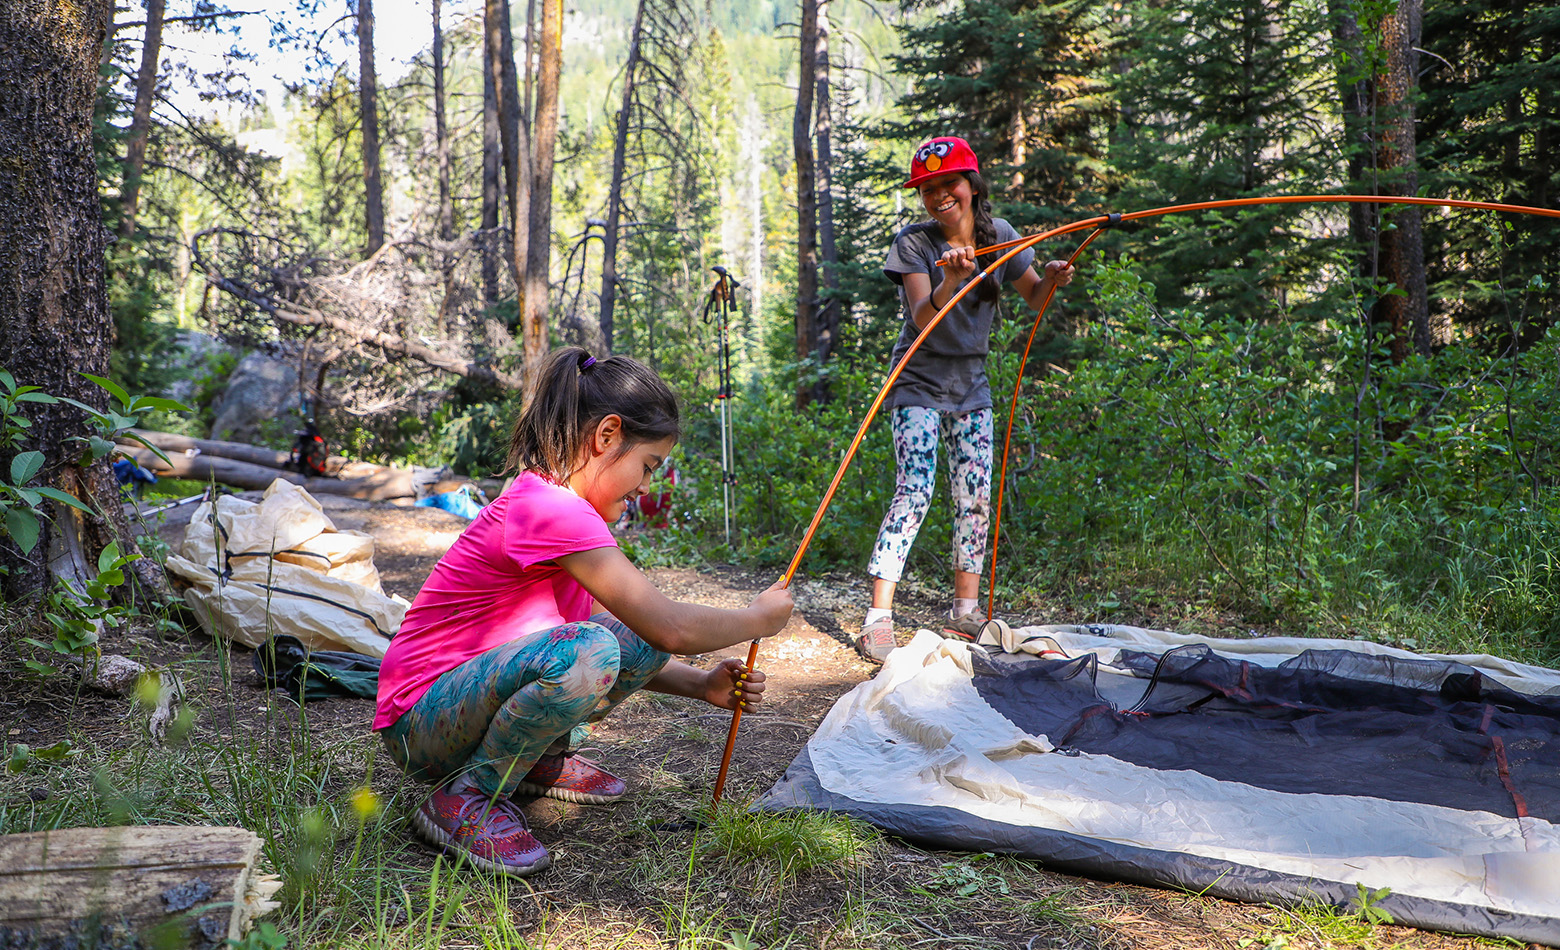 Joselin and Michelle set their backpacking tent up after a long day hiking the Cross Creek Trail. The kids were given instruction on how to put up the tent, but most of it was figured out on their own.